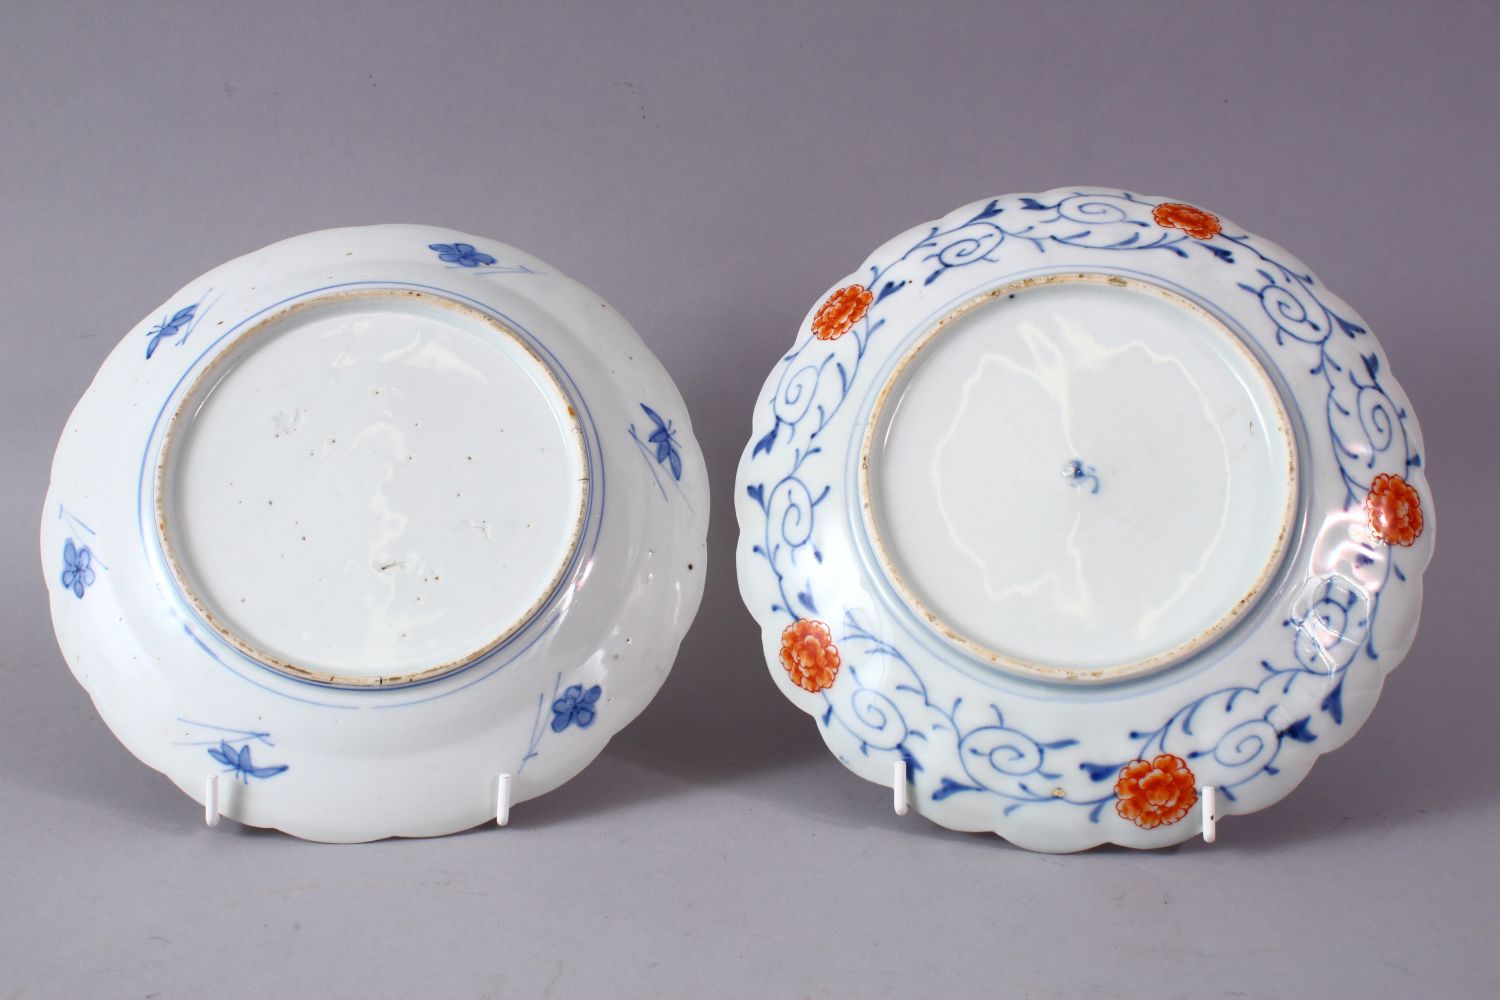 TWO MEIJI PERIOD IMARI PLATES, 20cm and 22cm. - Image 4 of 5